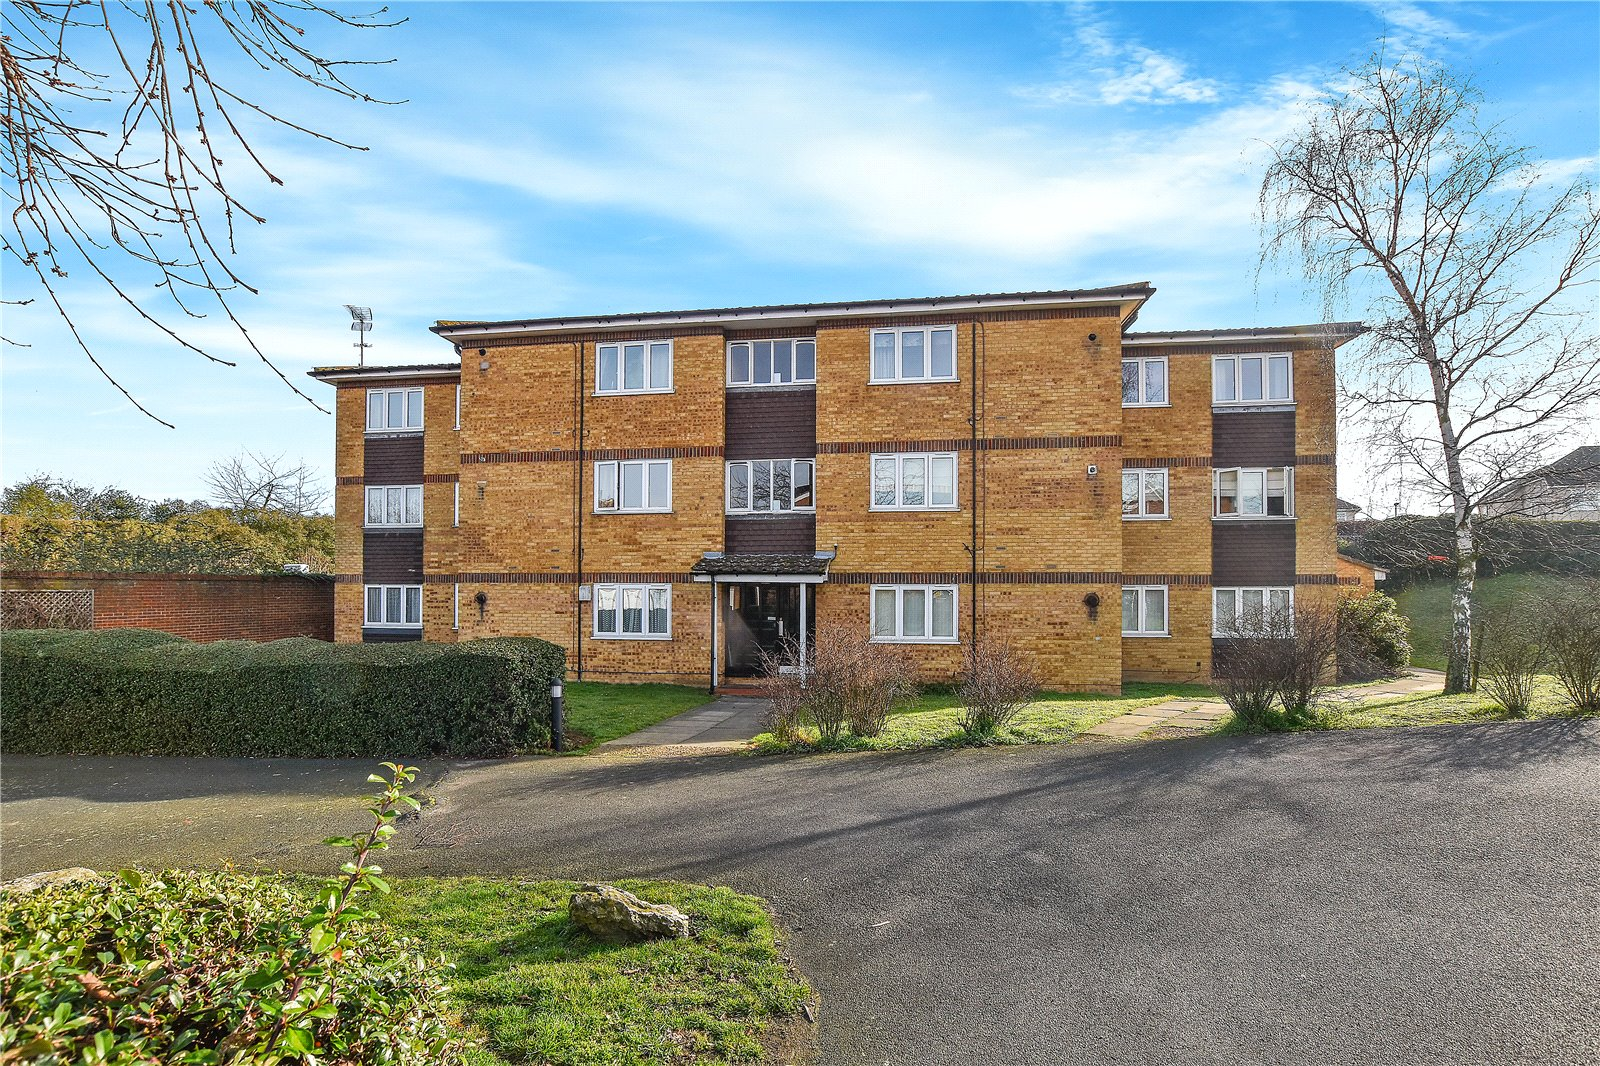 Fox Hollow Drive, Bexleyheath, Kent, DA7